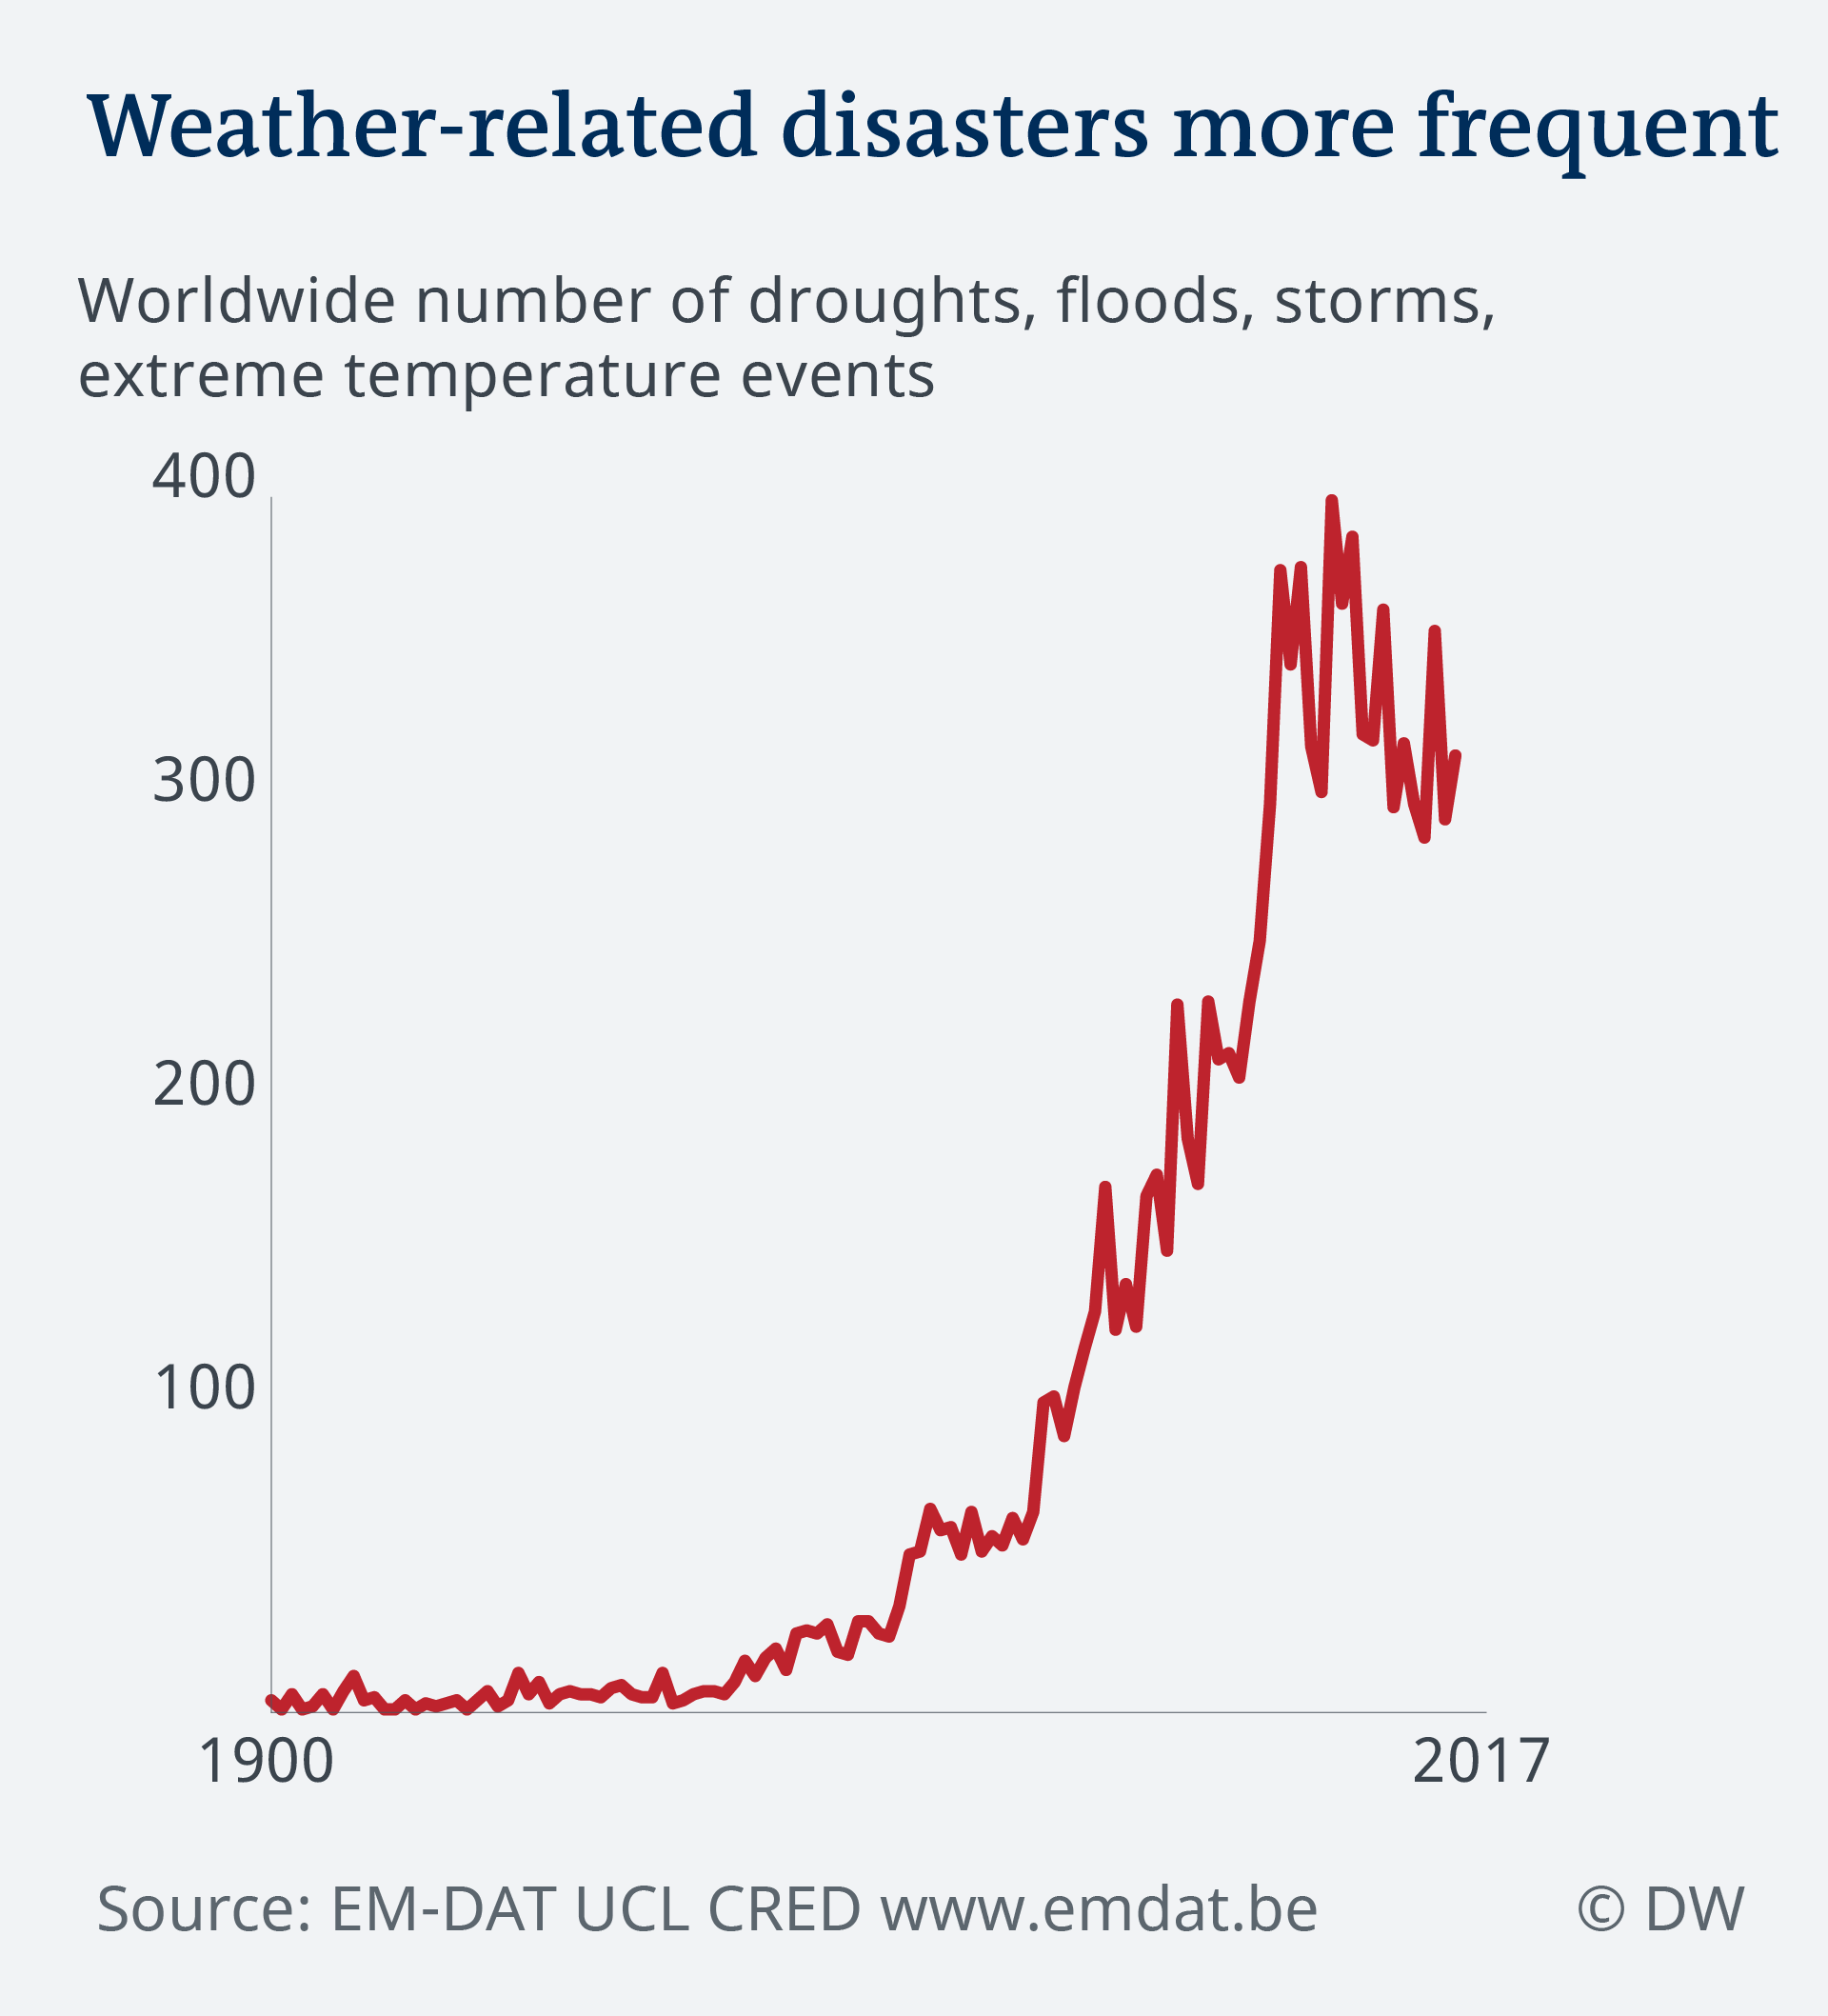 Data visualization climate risk insurance: Increased frequency of weather-related disasters